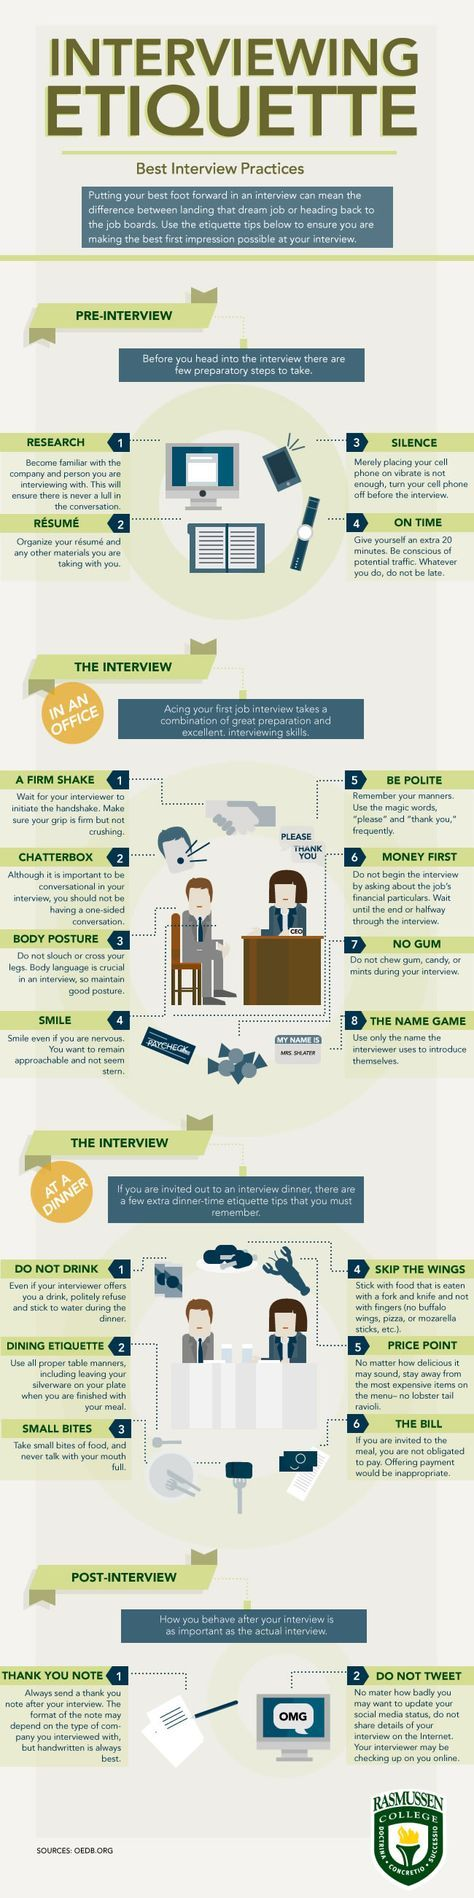 Attending an interview for a new job can always cause some form of hesitance and stress due to the unknown. To ensure you are successful during the interview process, be sure to prepare and dress in the right attire. Research the organization and familiarize yourself with their culture. Arrive on time and prepare to be